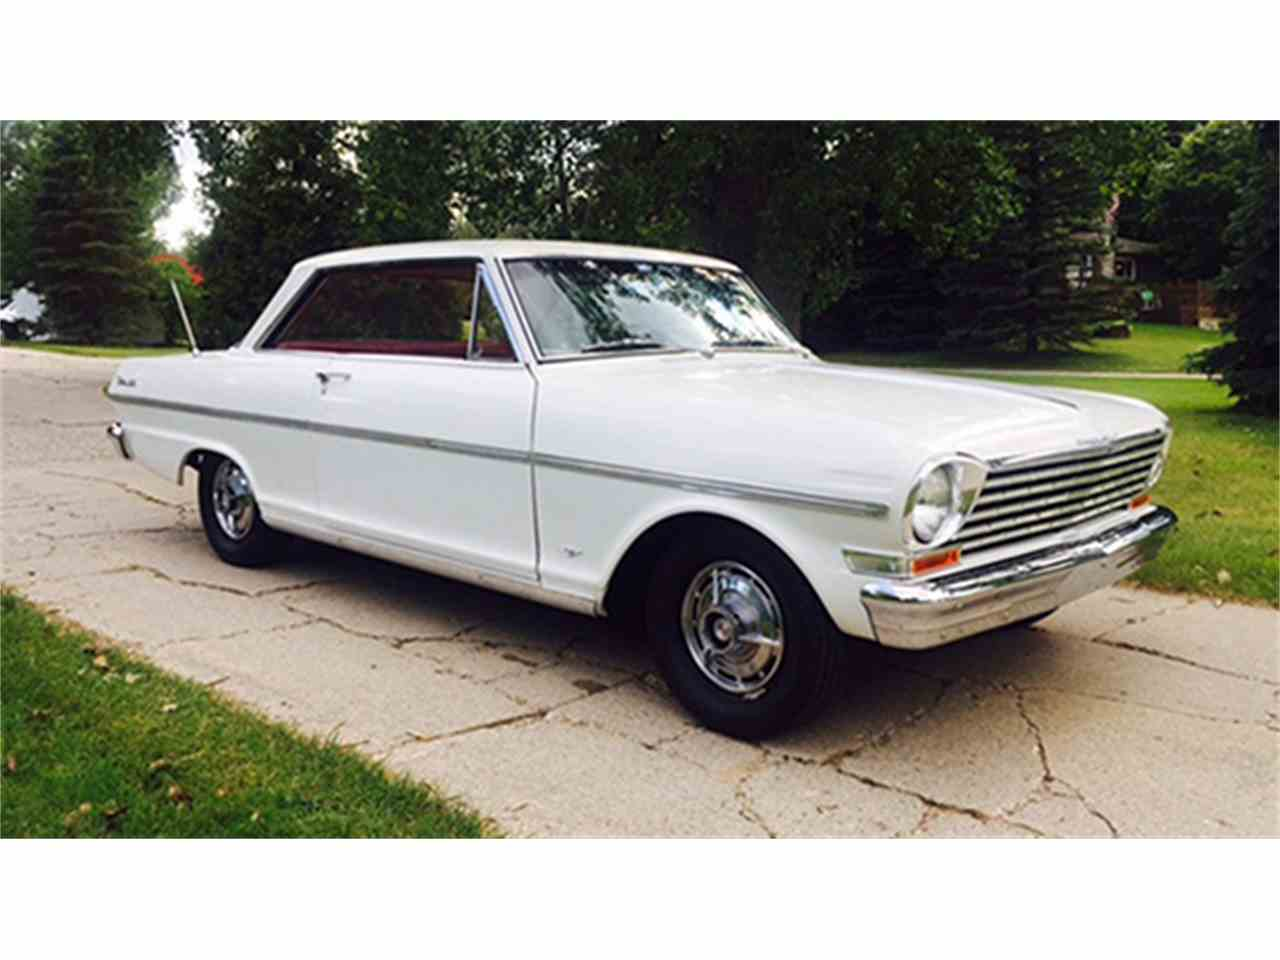 1963 chevrolet chevy ii nova ss sport coupe for sale classiccars large picture of 63 chevy ii nova ss sport coupe loxz sciox Choice Image